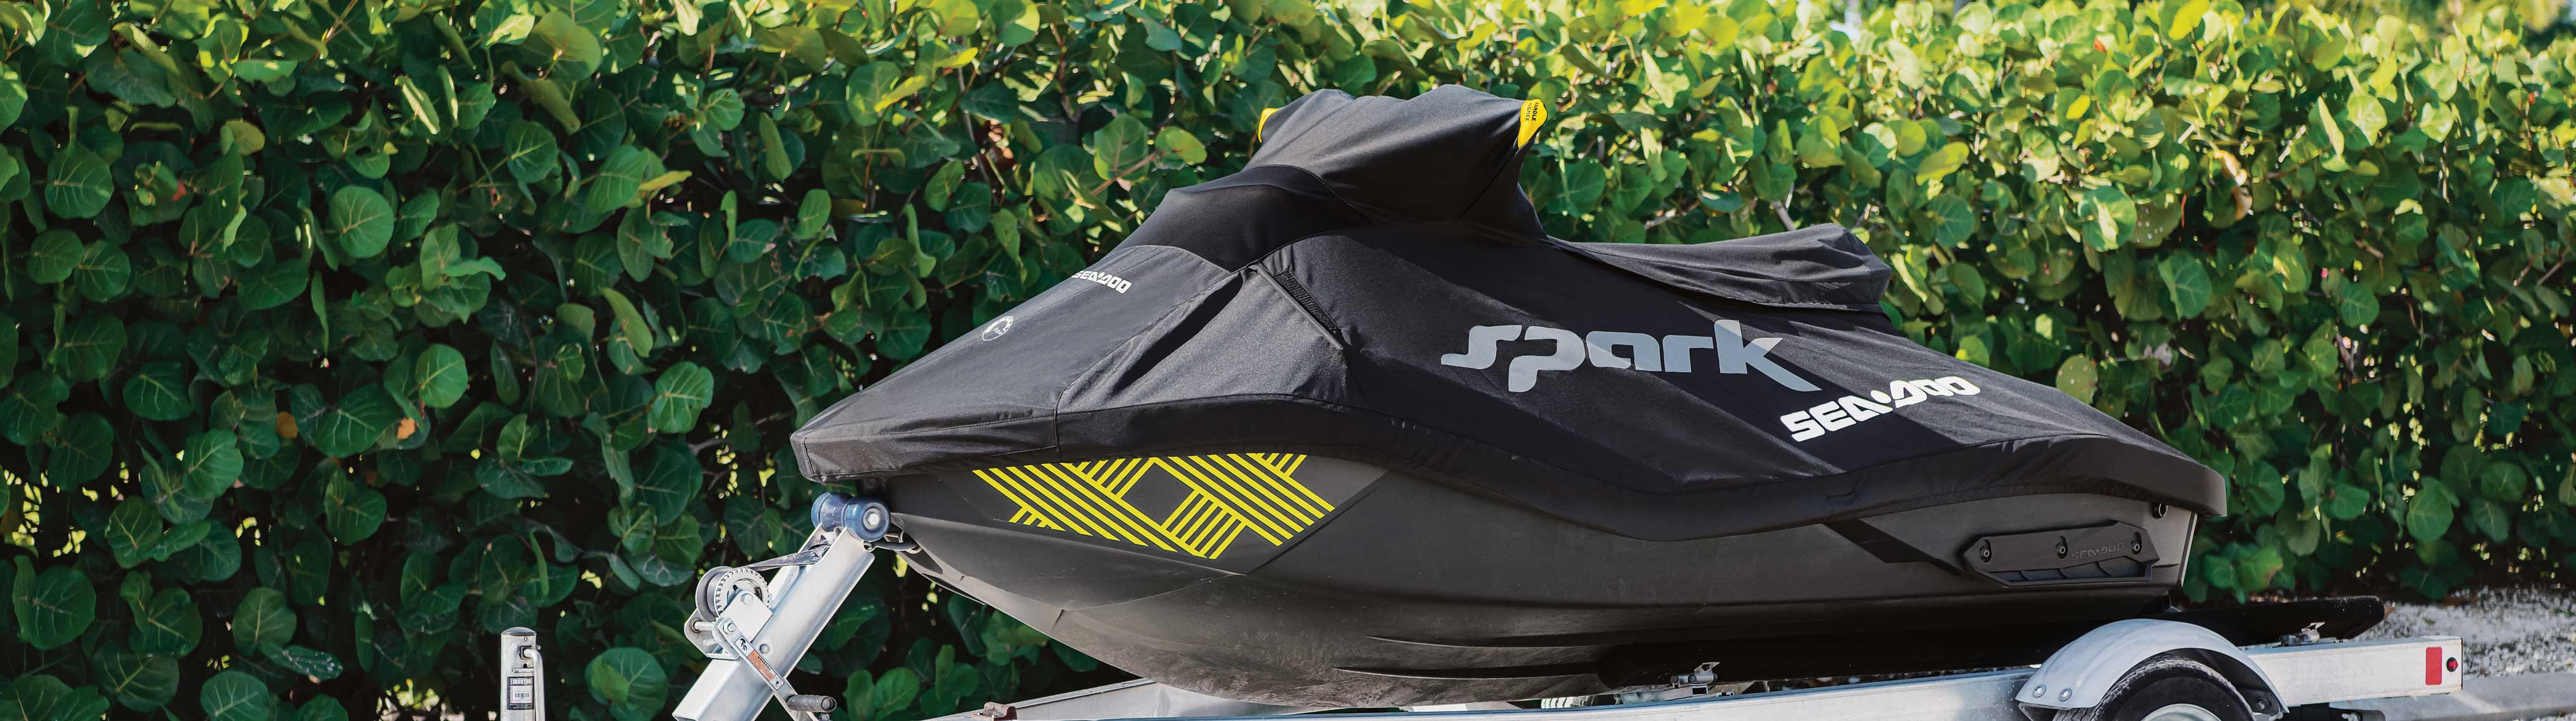 Sea-Doo SPARK with a Sea-Doo cover on a trailer